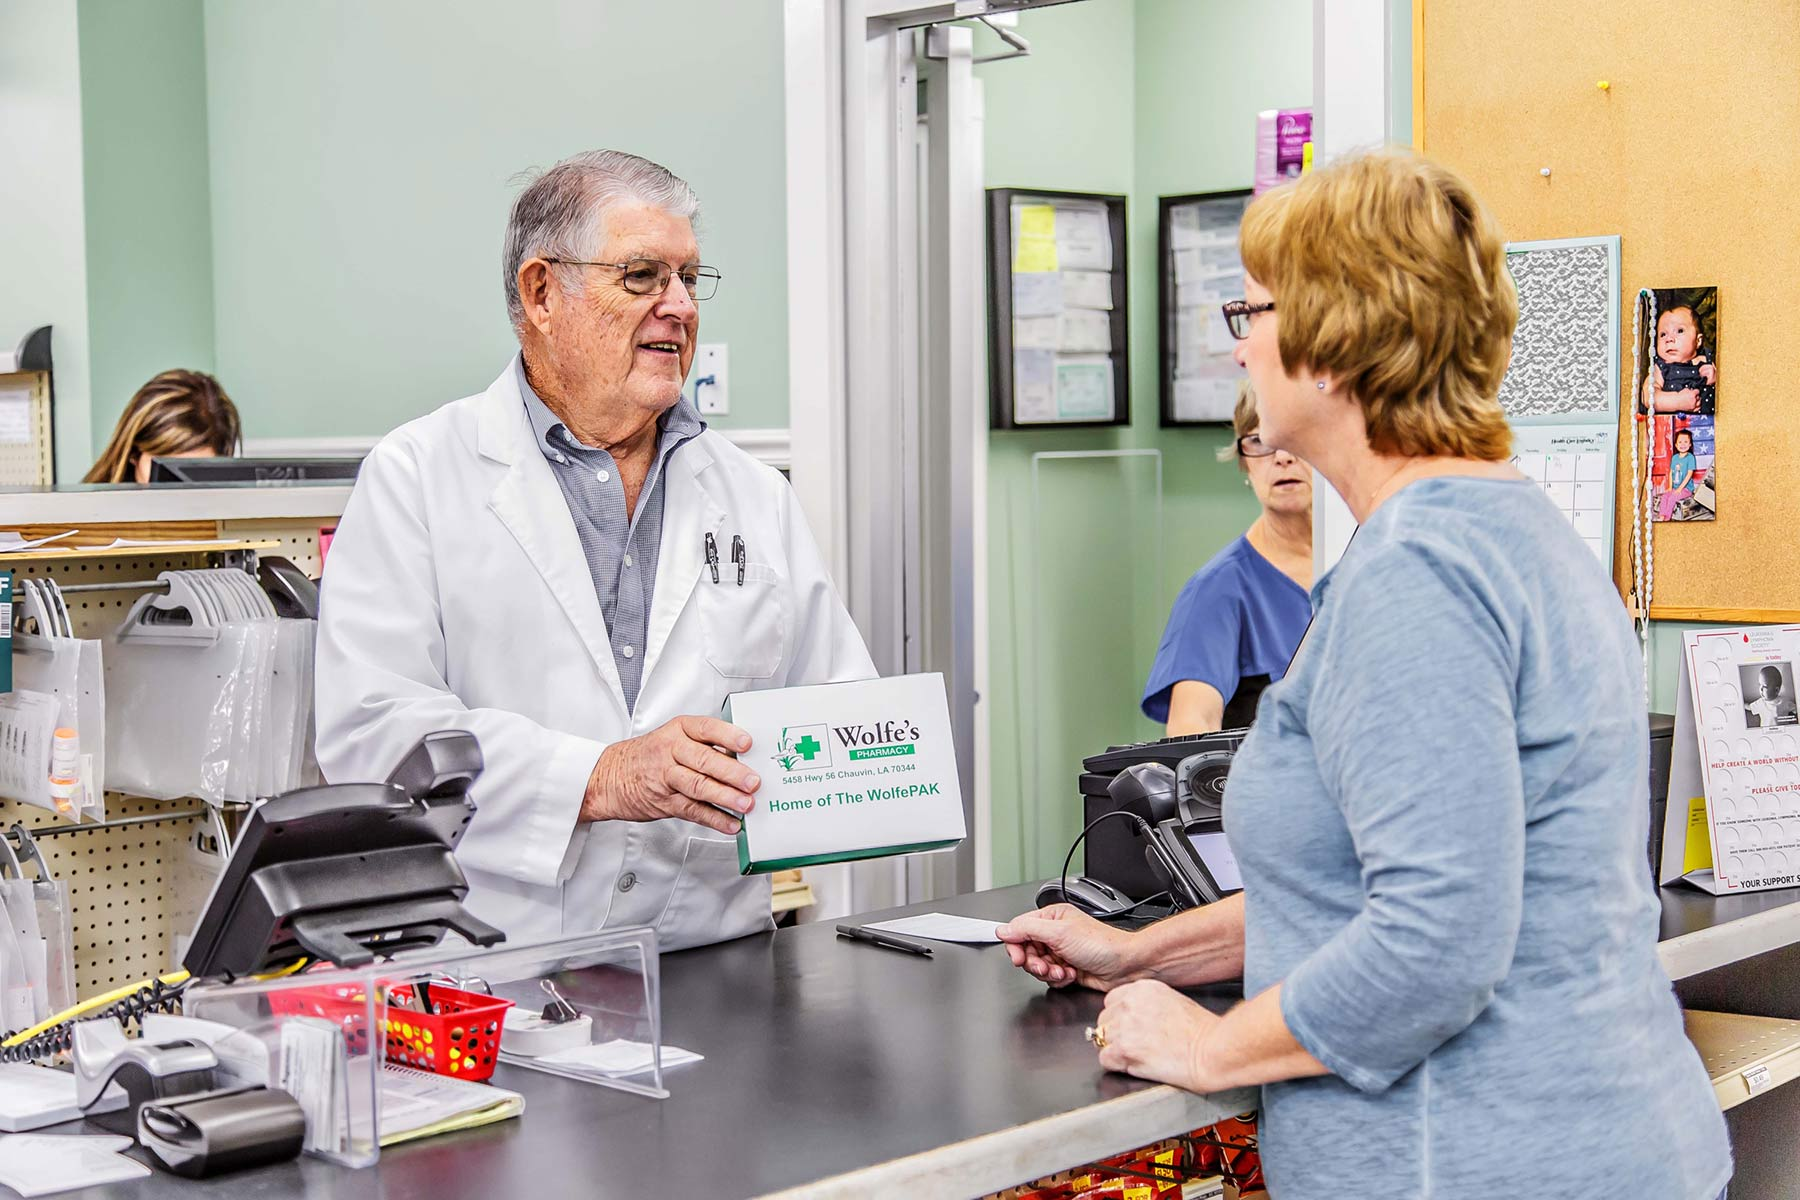 Peter Wolfe discusses adherence packaging with patient